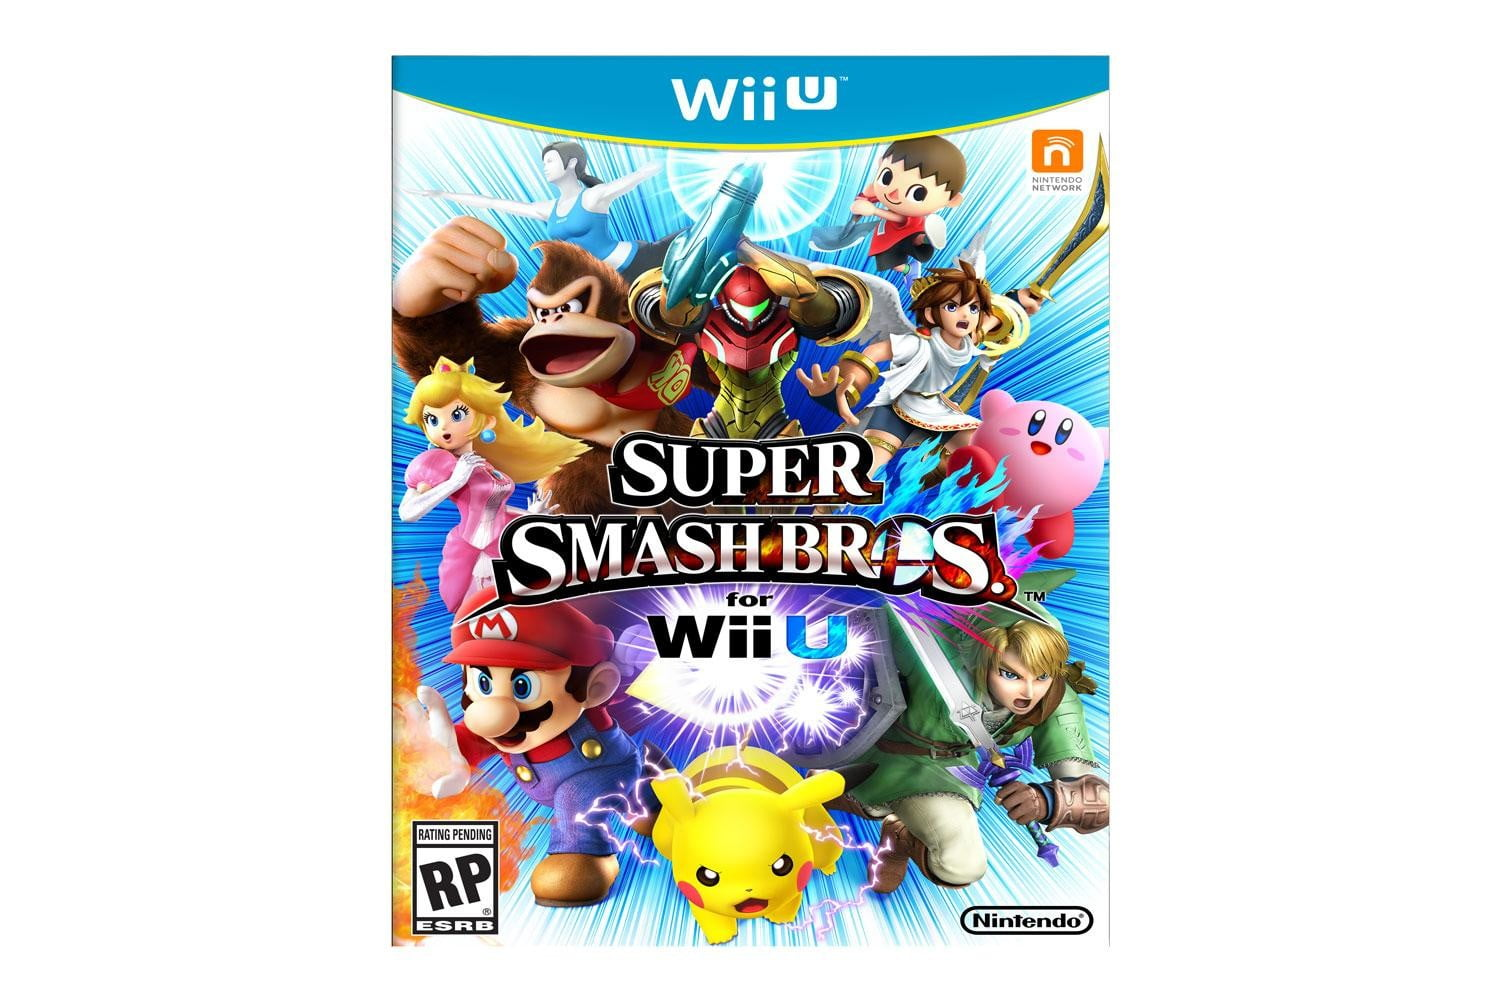 Super-Smash-Bros.-for-Wii-U-cover-art